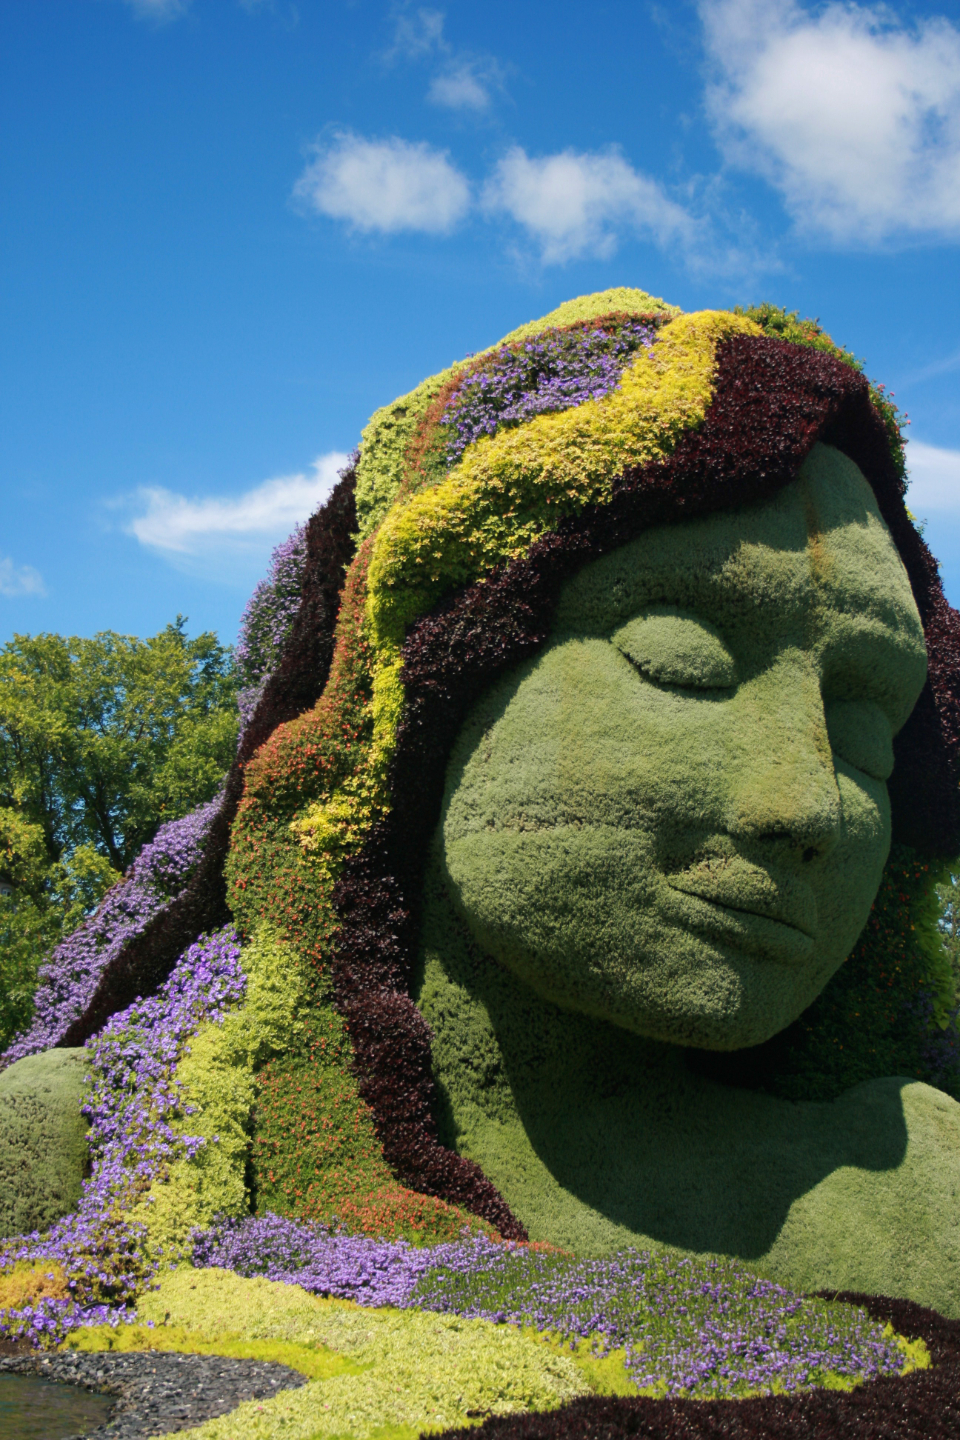 garden hedges plant sculpture art flowers botany green decoration face head eyes nose mouth